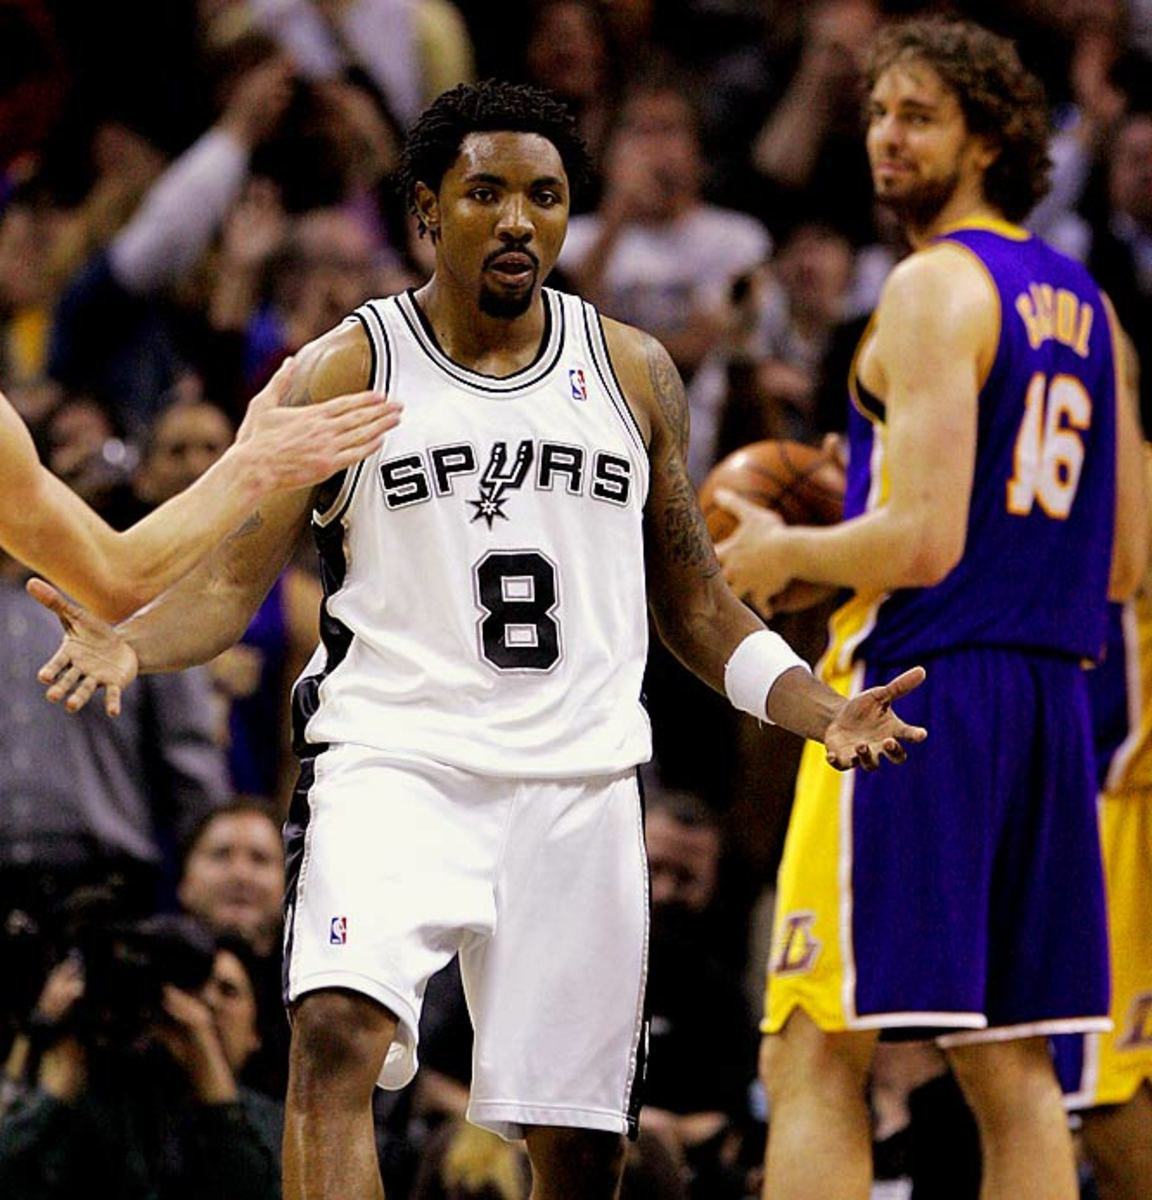 Spurs at Lakers